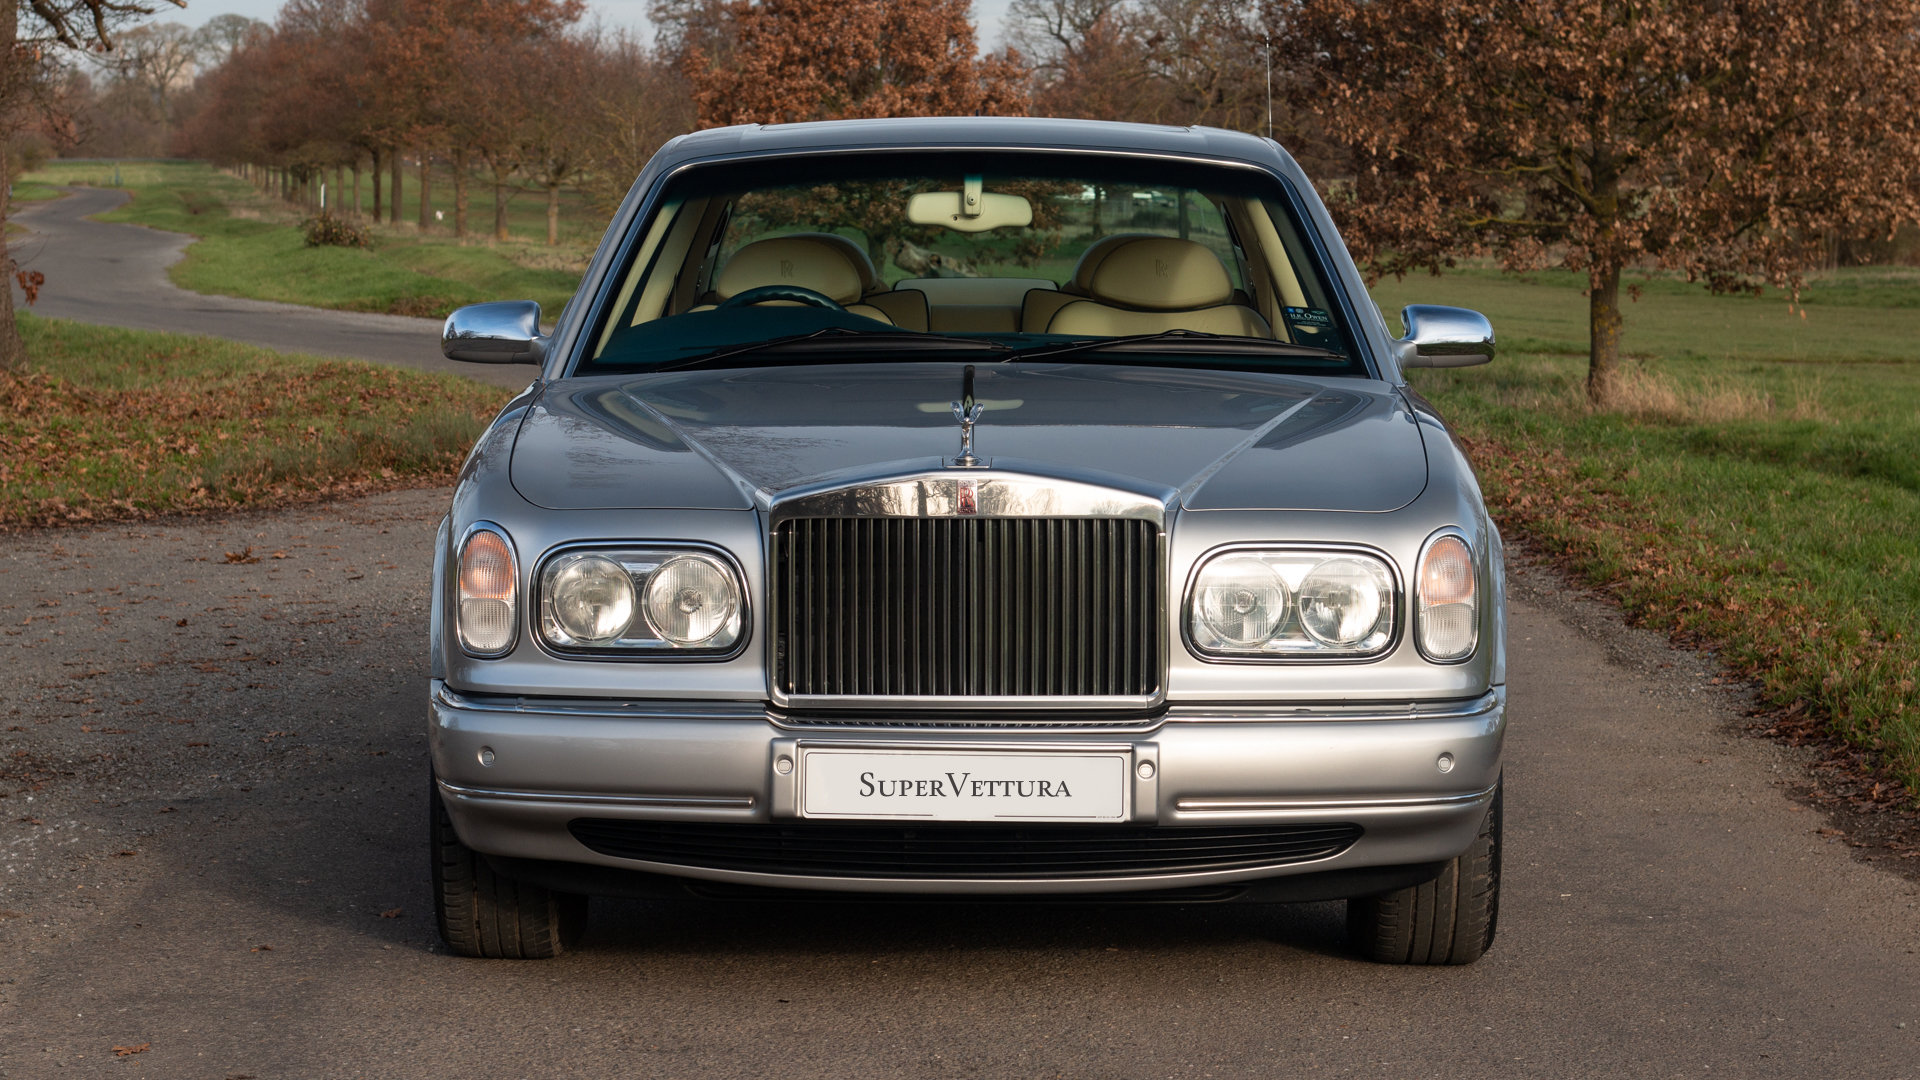 2002 Last of Line Rolls Royce Silver Seraph For Sale (picture 3 of 6)